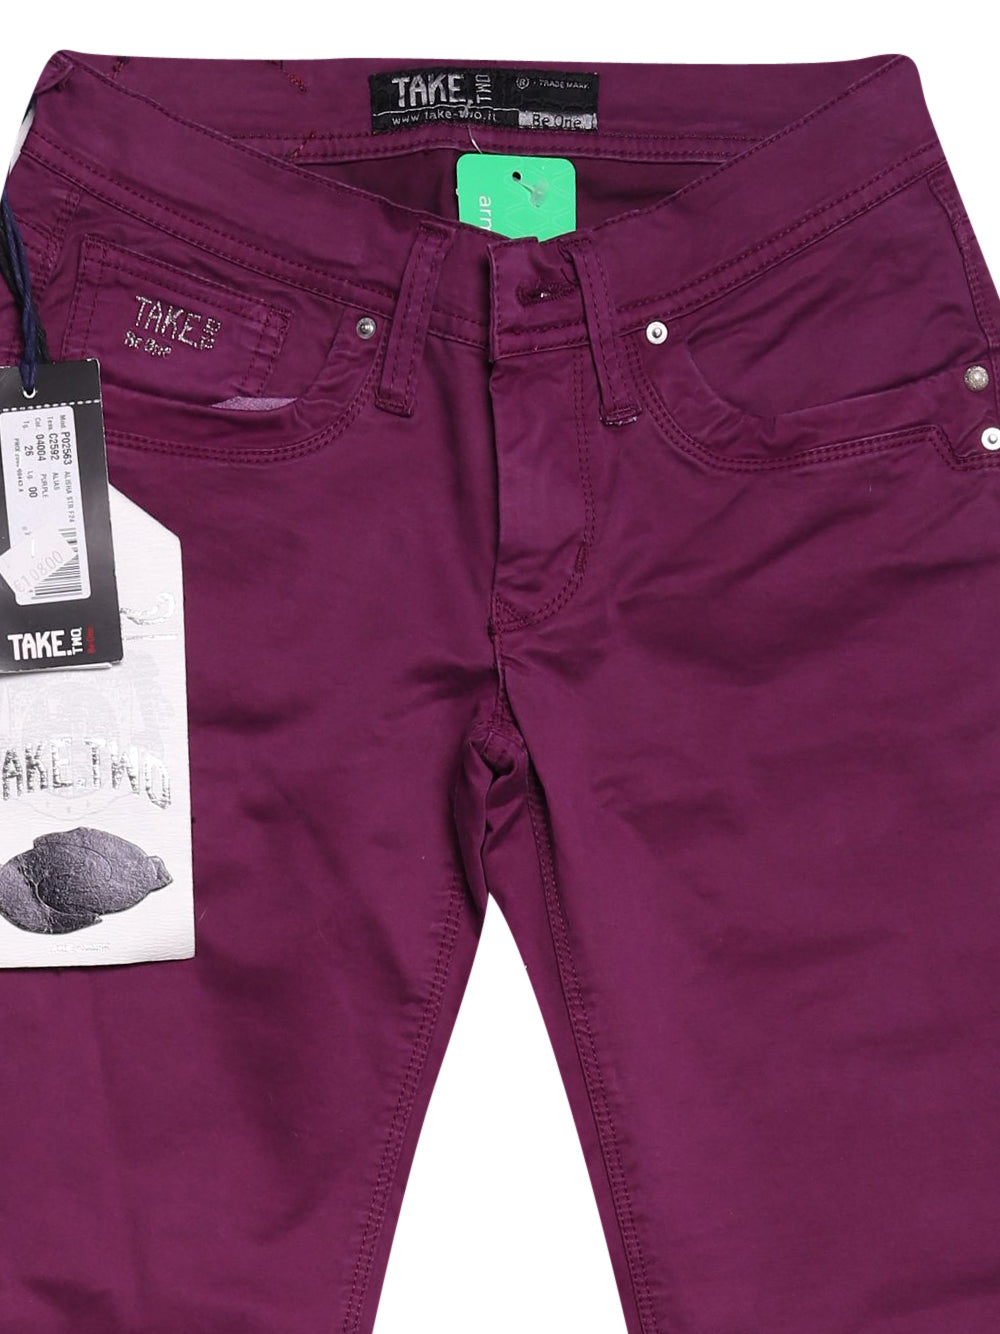 Detail photo of Unworn Take Two Violet Woman's trousers - size 8/S